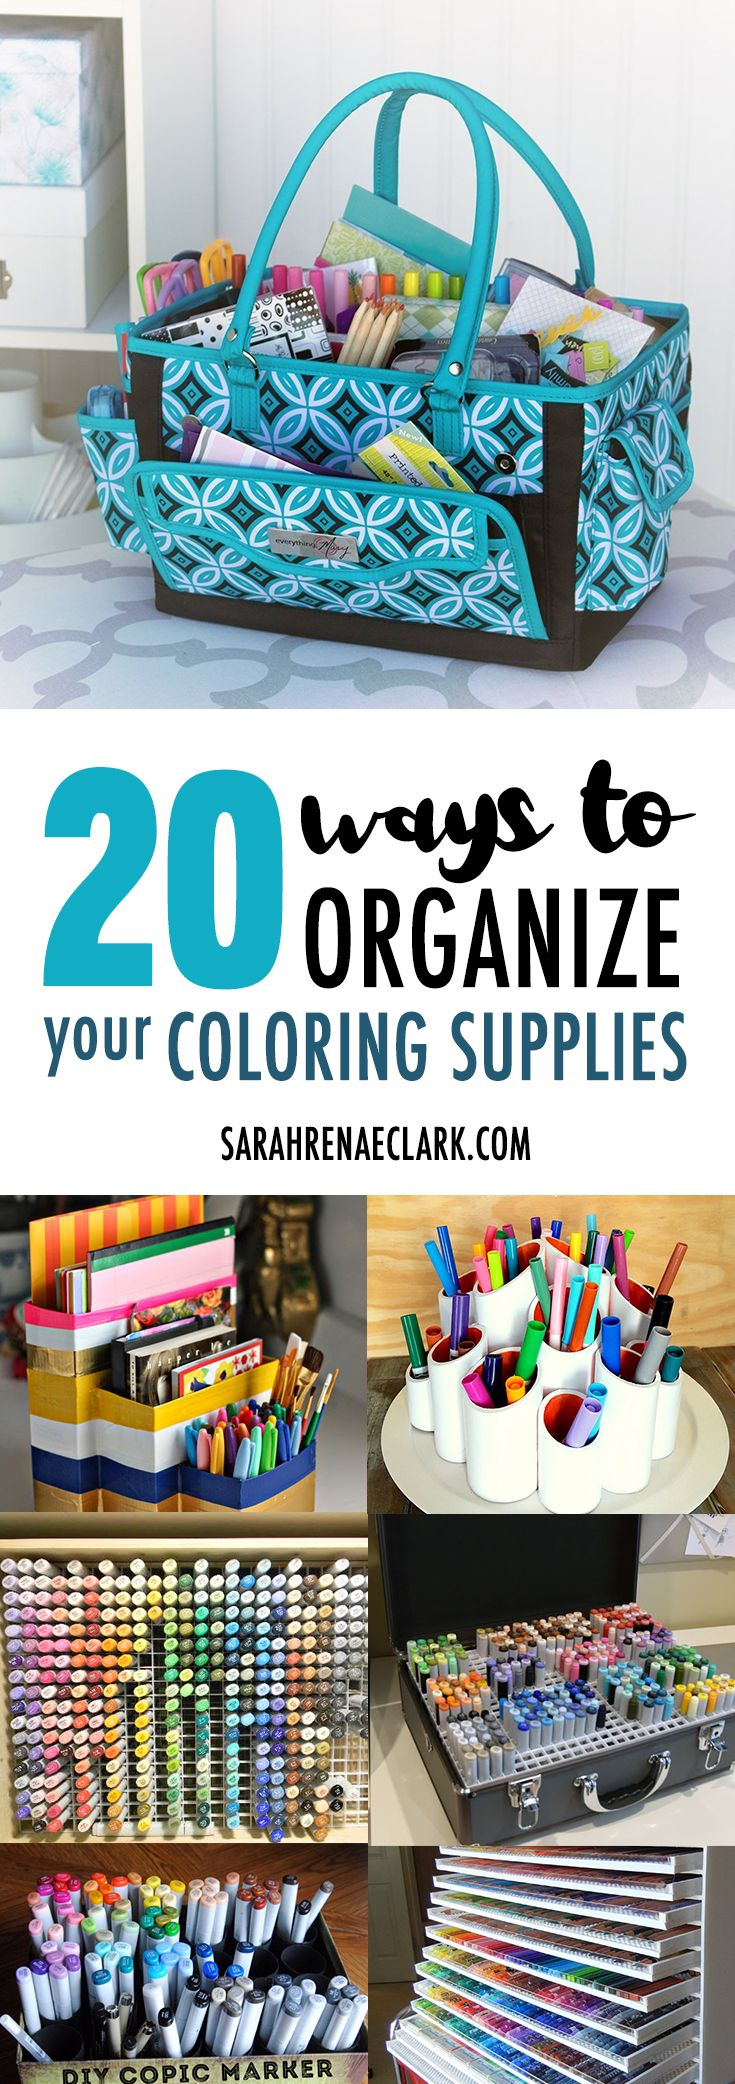 20 Clever Ways To Organize Your Coloring Supplies Pen Storage Diy Pencil Storage Marker Storage